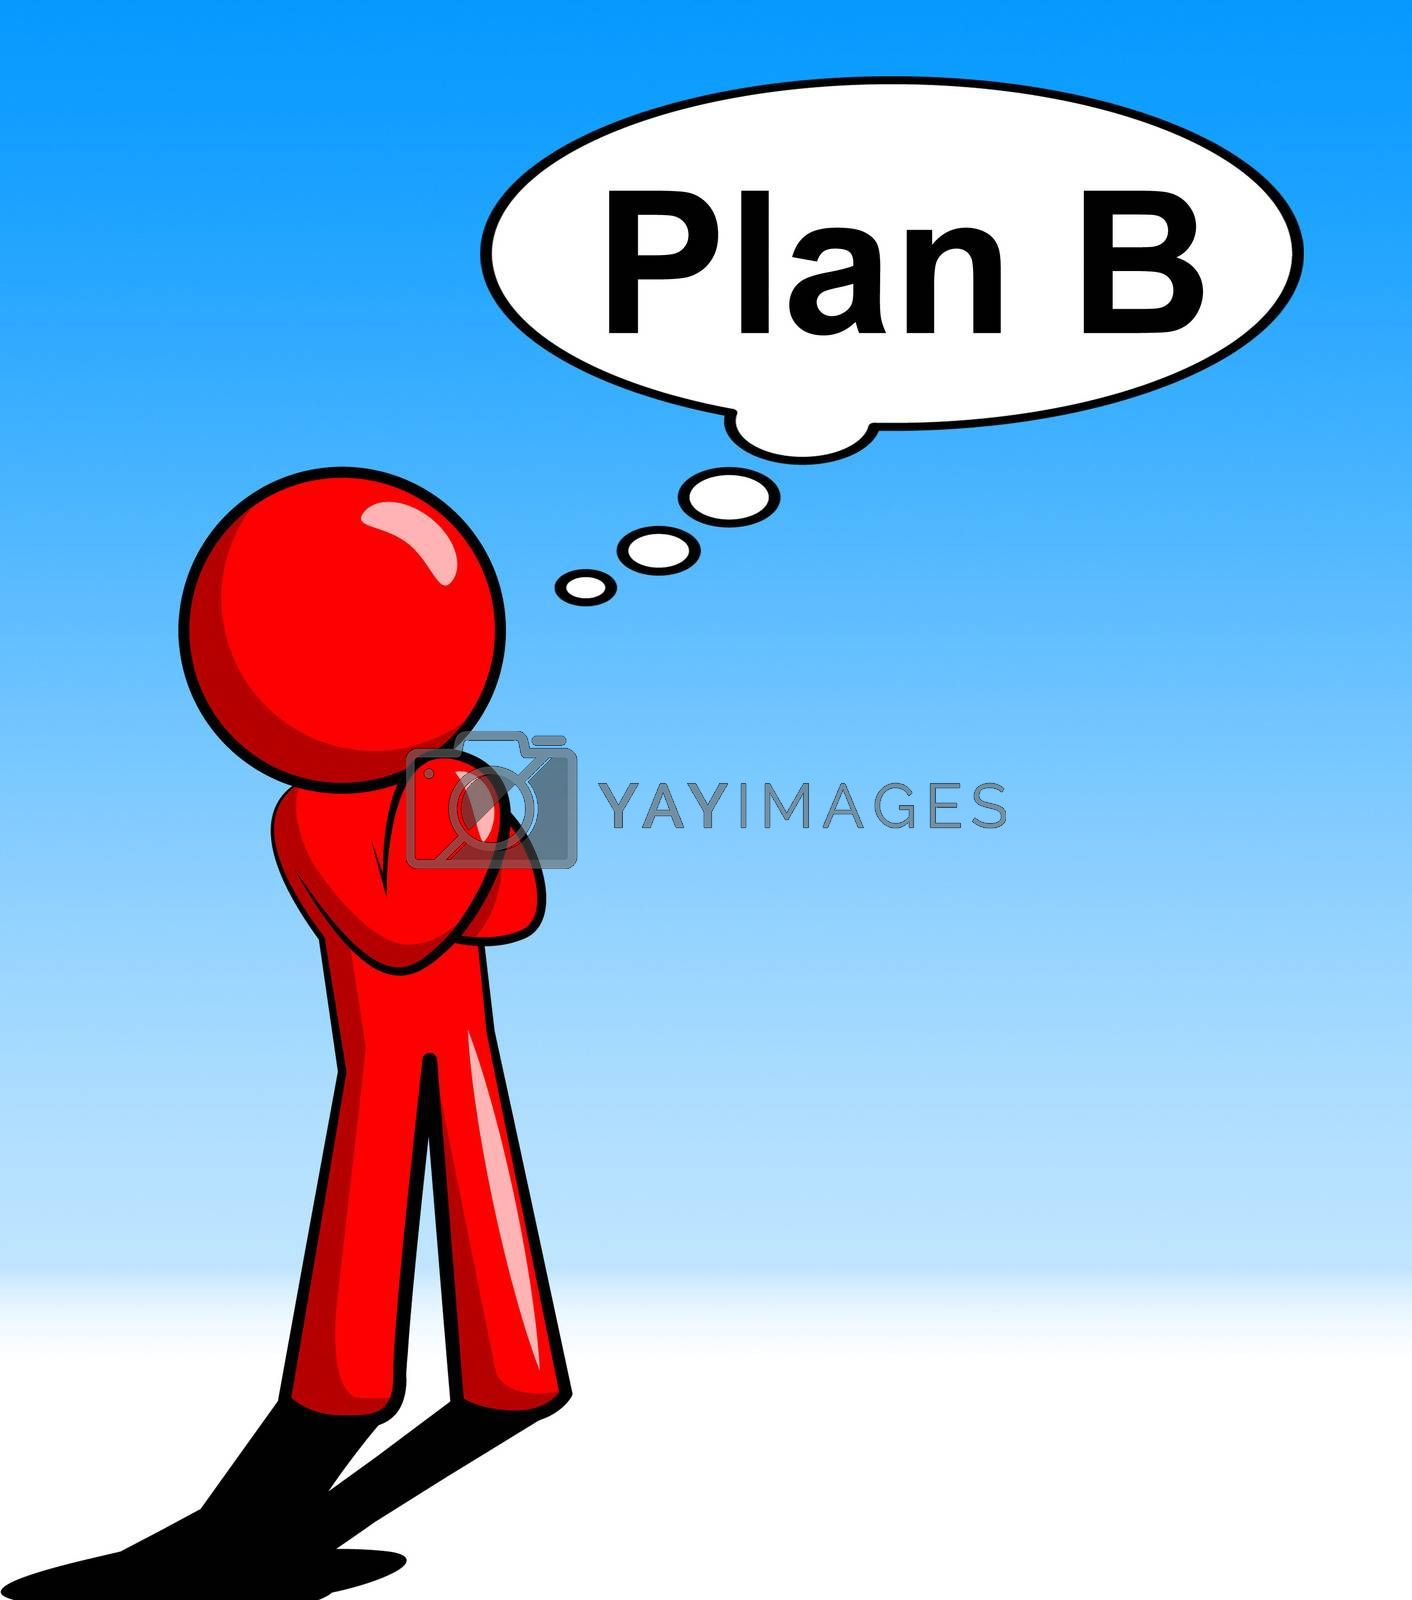 Plan B Shows Fall Back On And Alternative by stuartmiles